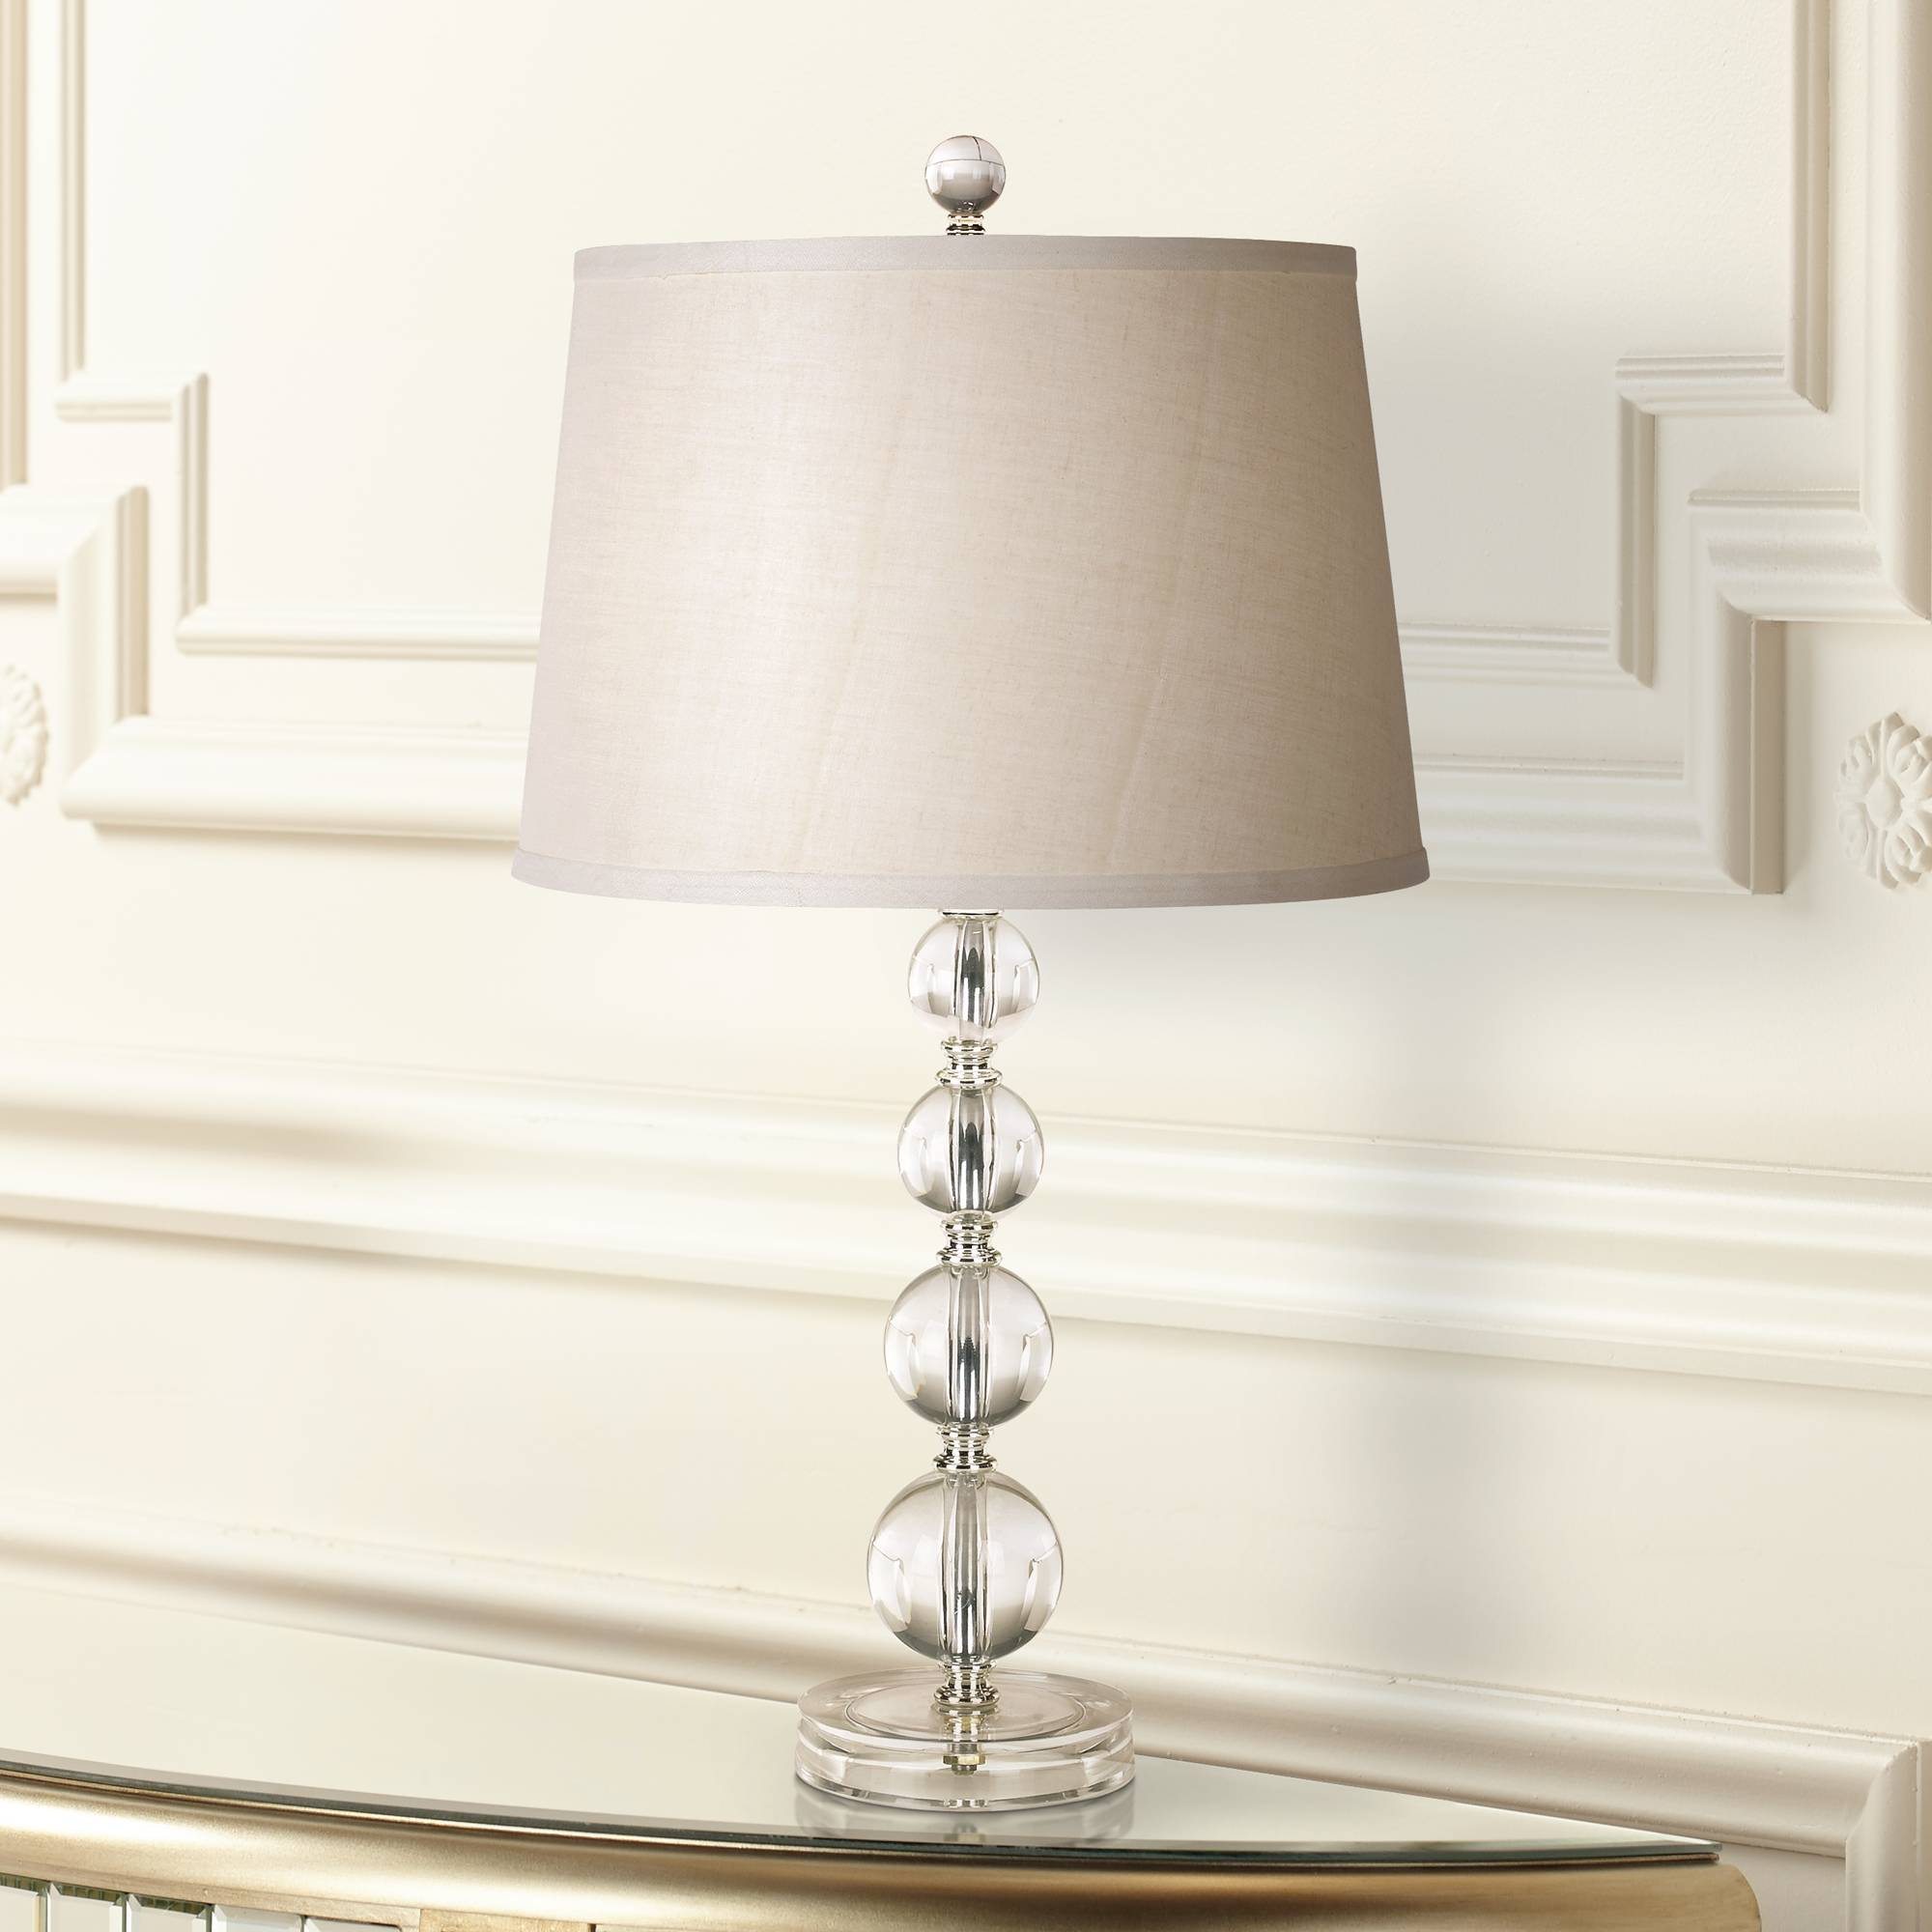 Modern Table Lamp Stacked Clear Acrylic Ball Open Design For Living